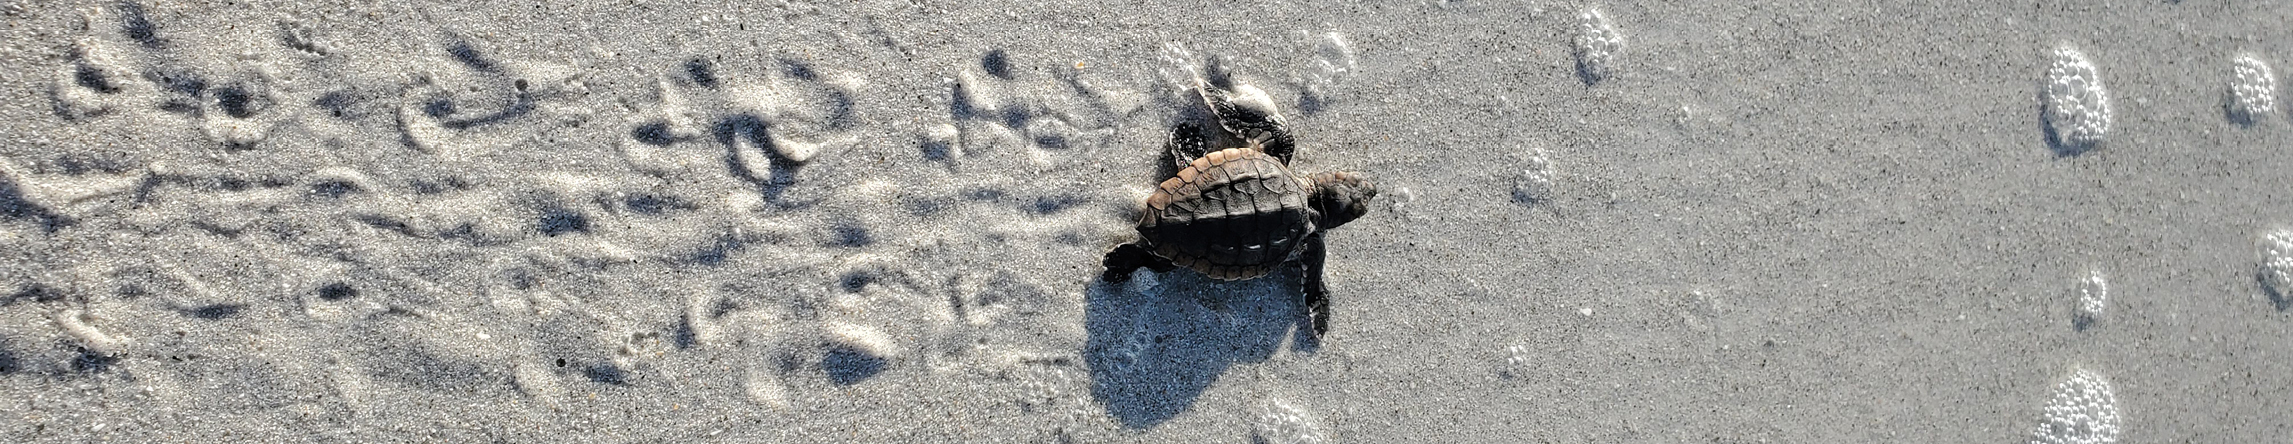 SCCF-Sea-Turtle-Img-Section-1-Mobile